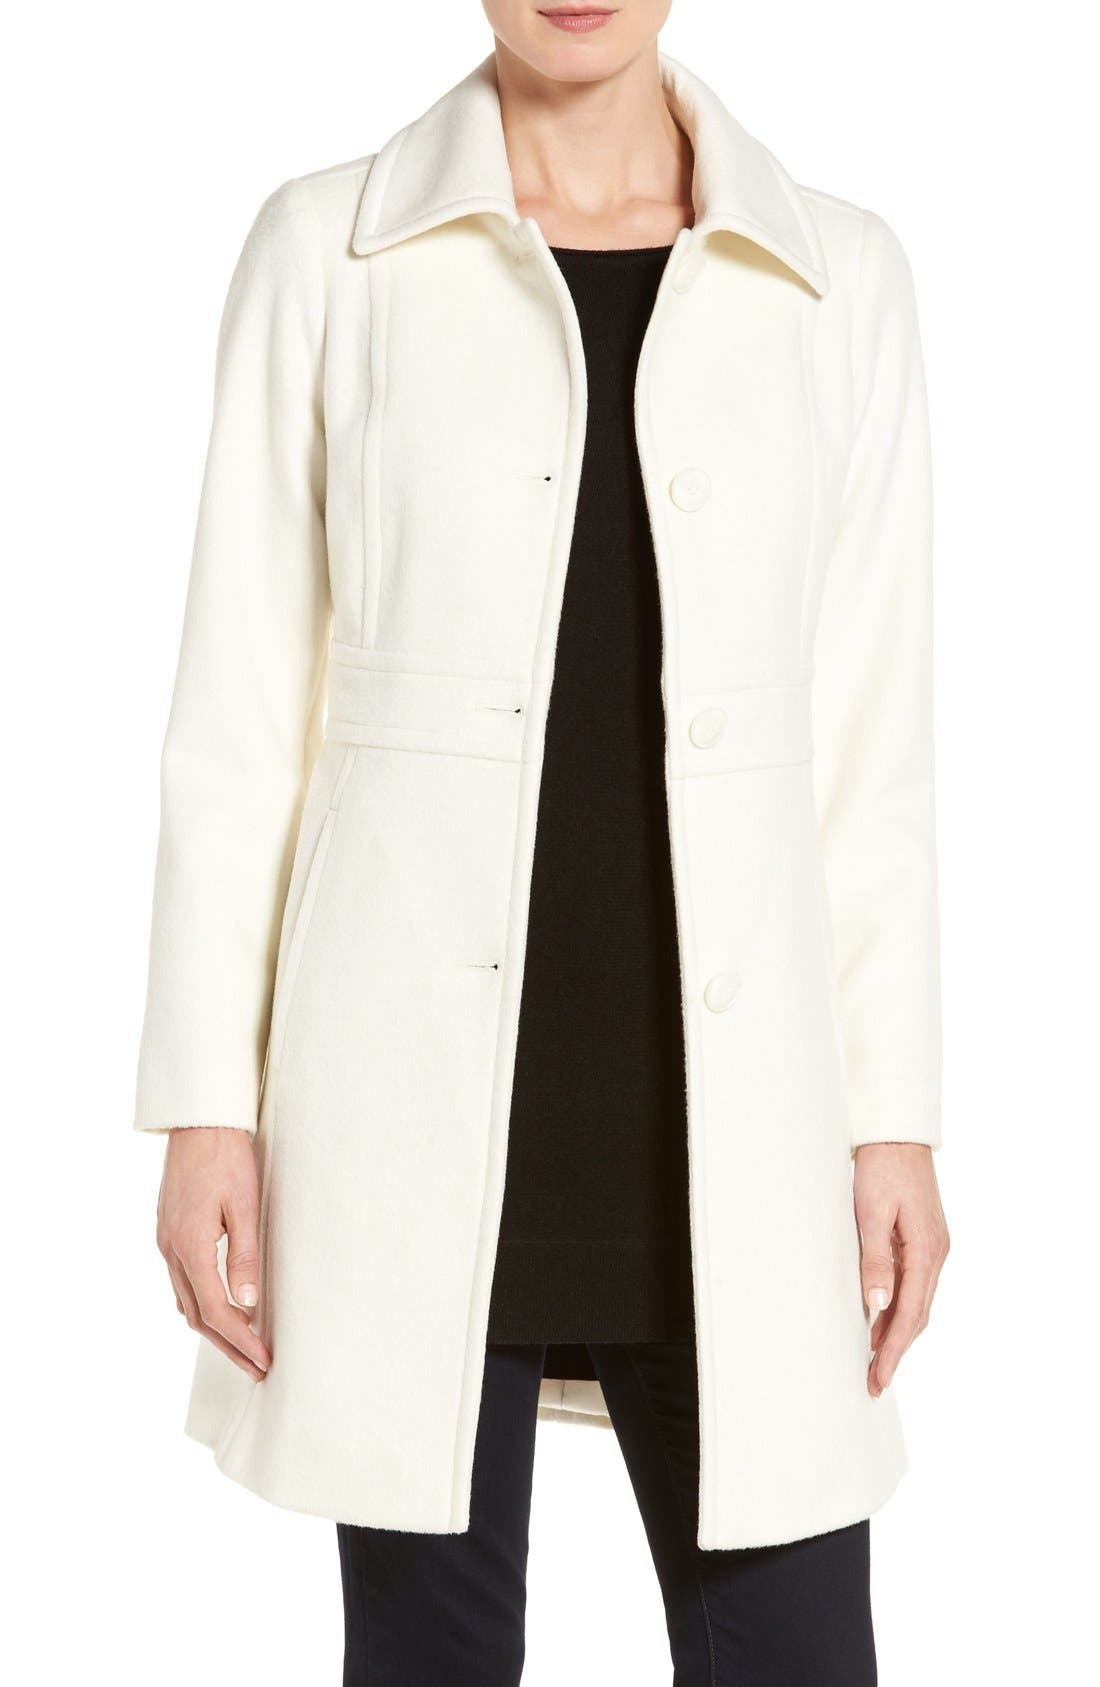 Wool Blend Walking Coat,                             Main thumbnail 1, color,                             Winter White